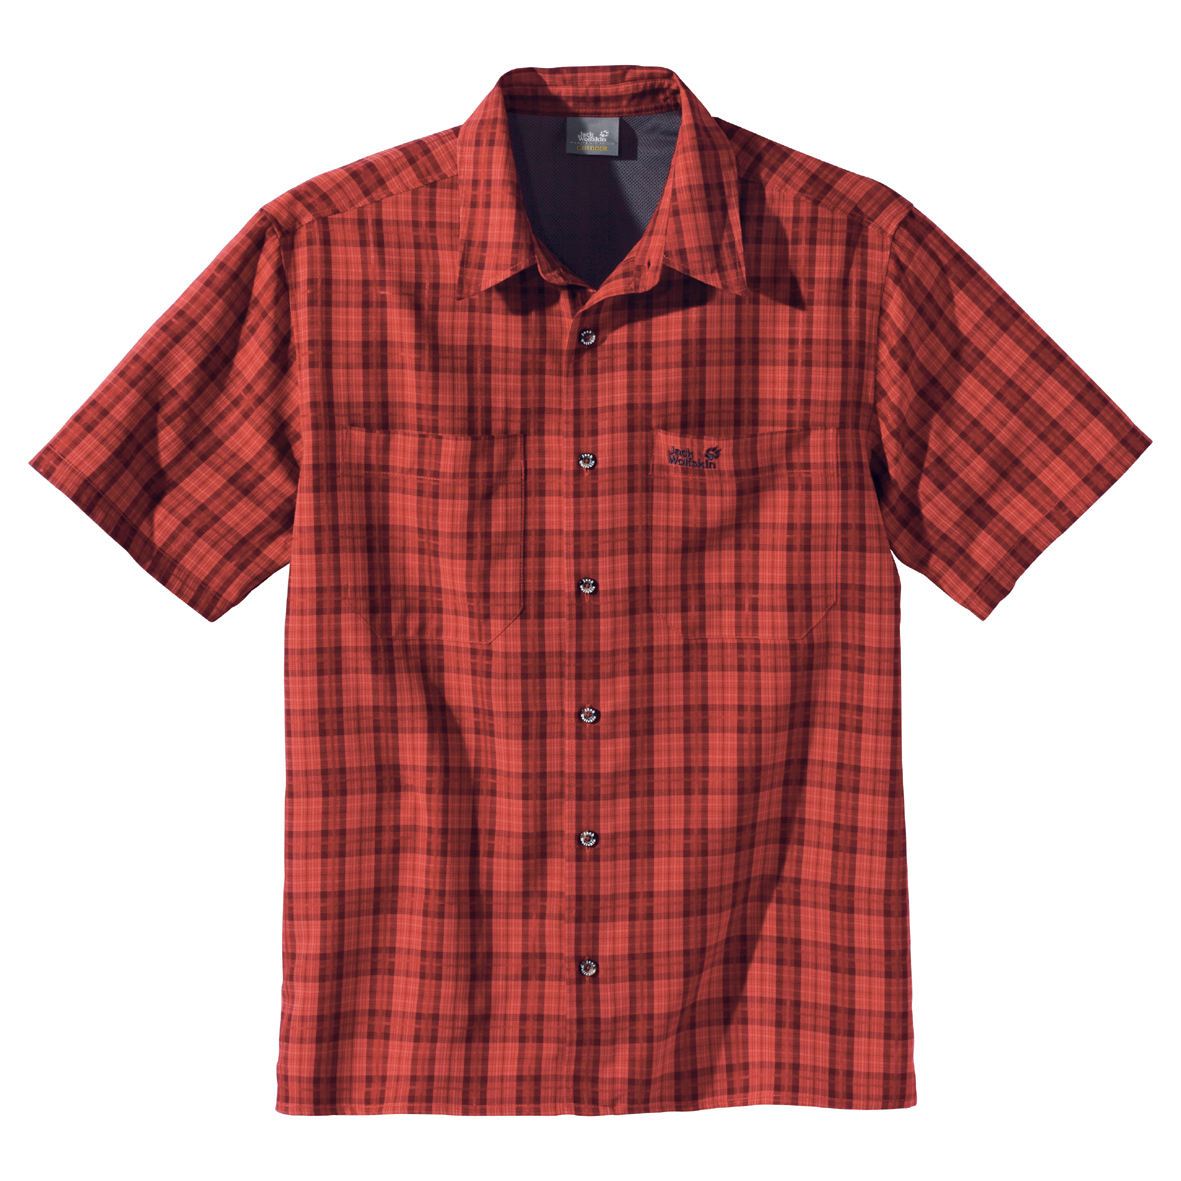 JACK WOLFSKIN MEN DIAMOND BAY MOSQUITO SHIRT SPICY MEXICAN CHECKS